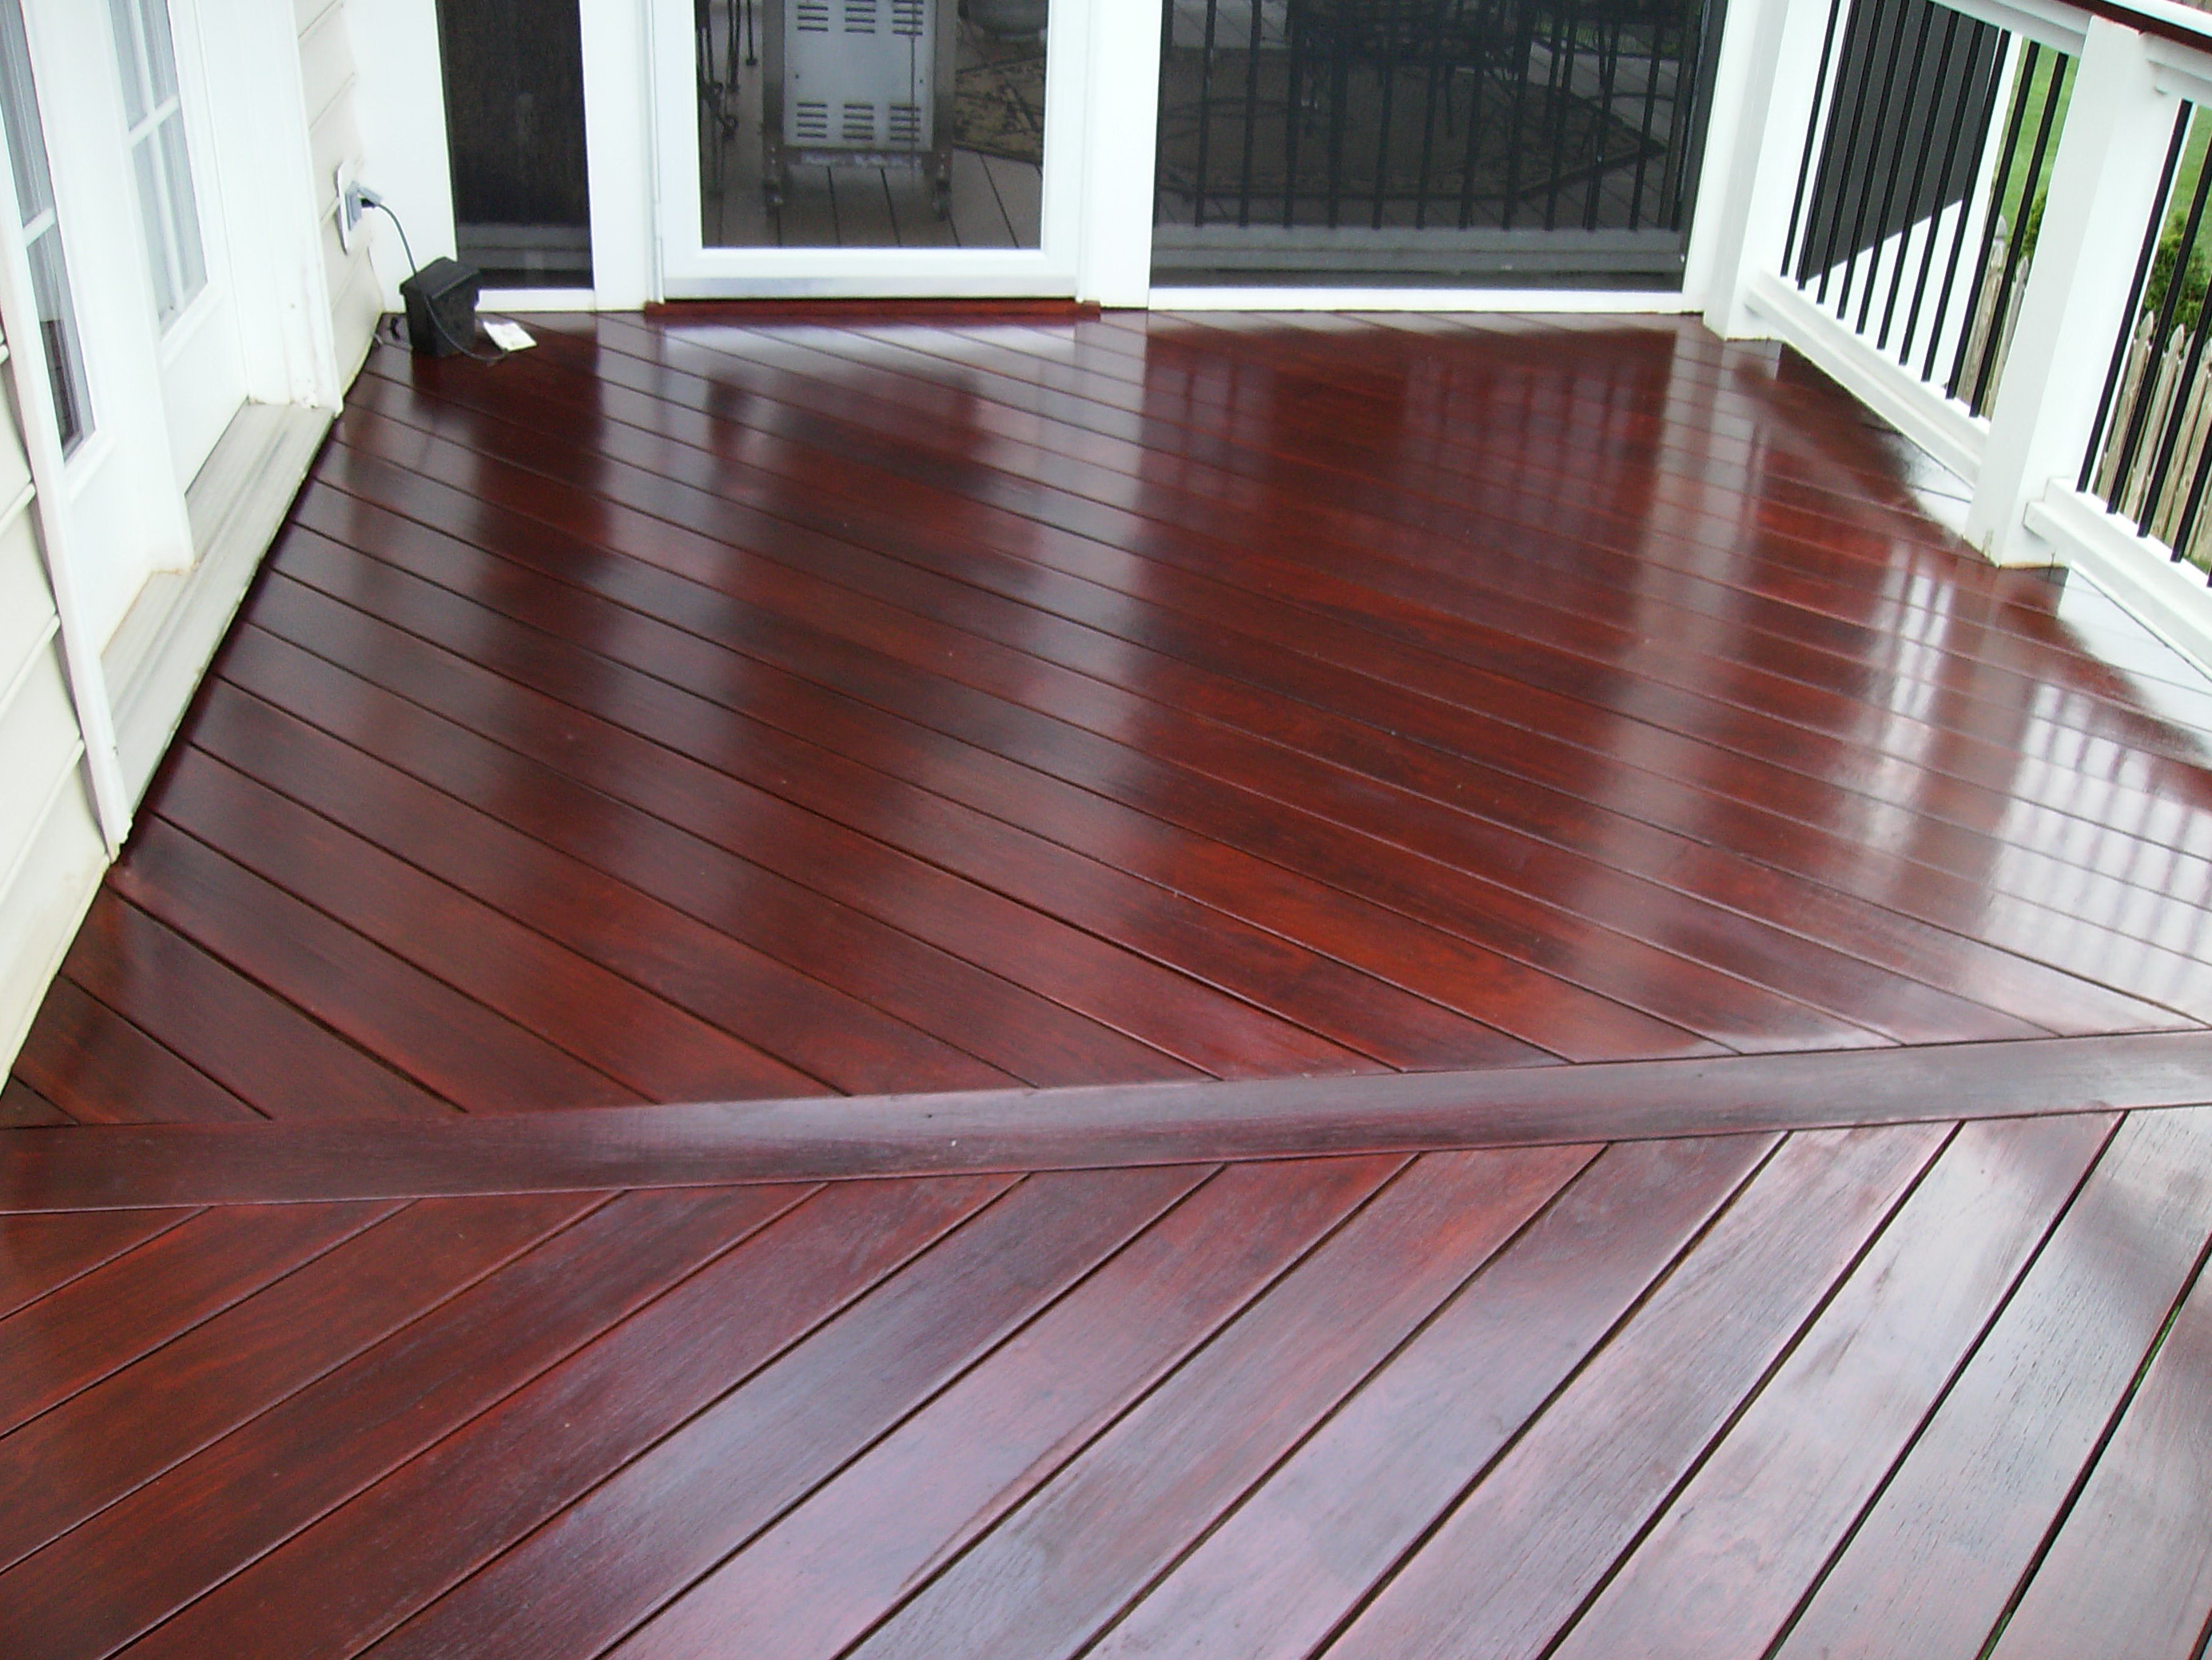 Behr deck stain colors home design ideas twp deck stain colors nvjuhfo Image collections